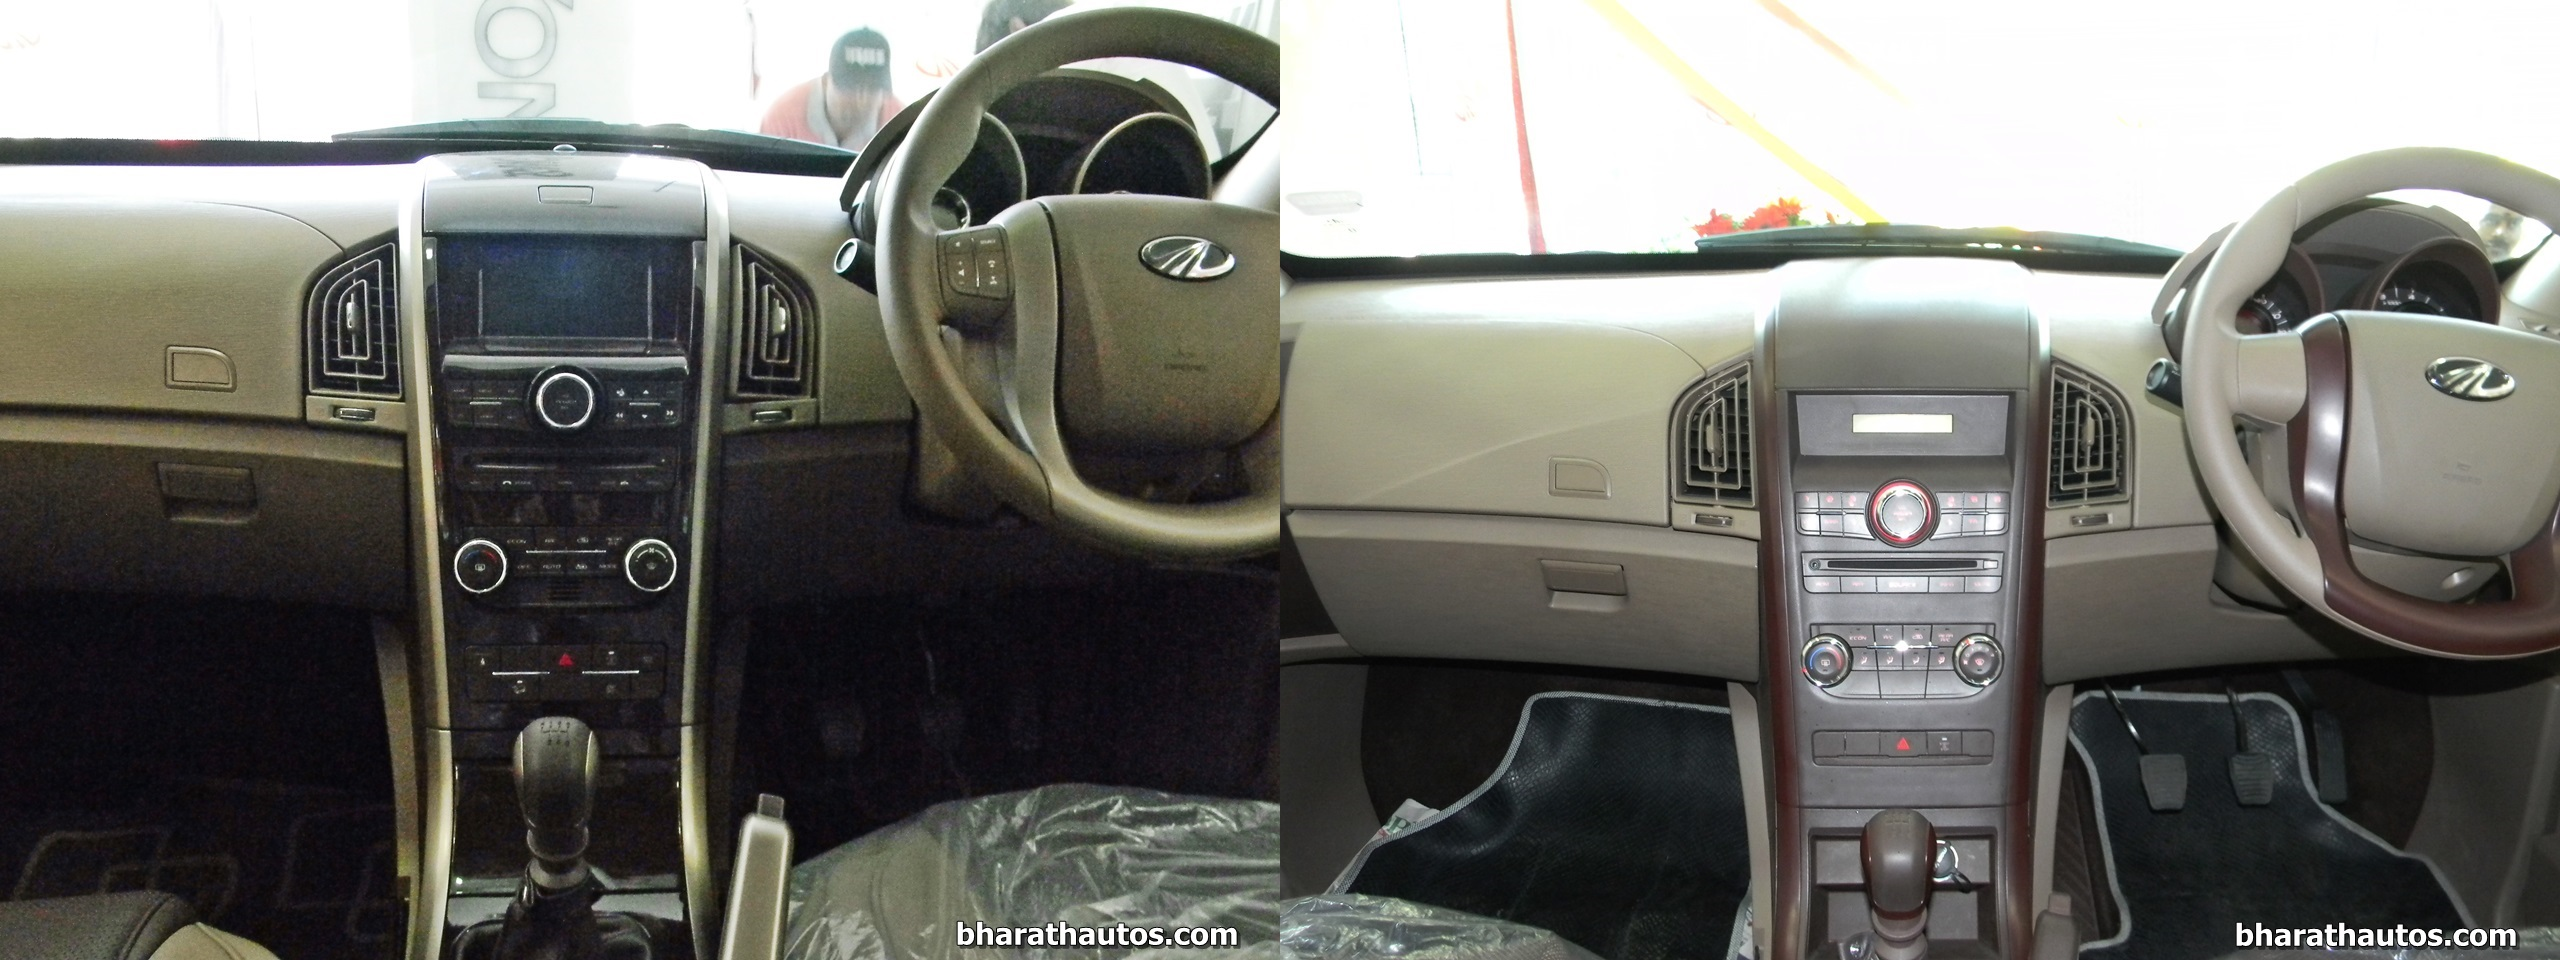 mahindra xuv500 w8 and w4 side by side visual comparison. Black Bedroom Furniture Sets. Home Design Ideas